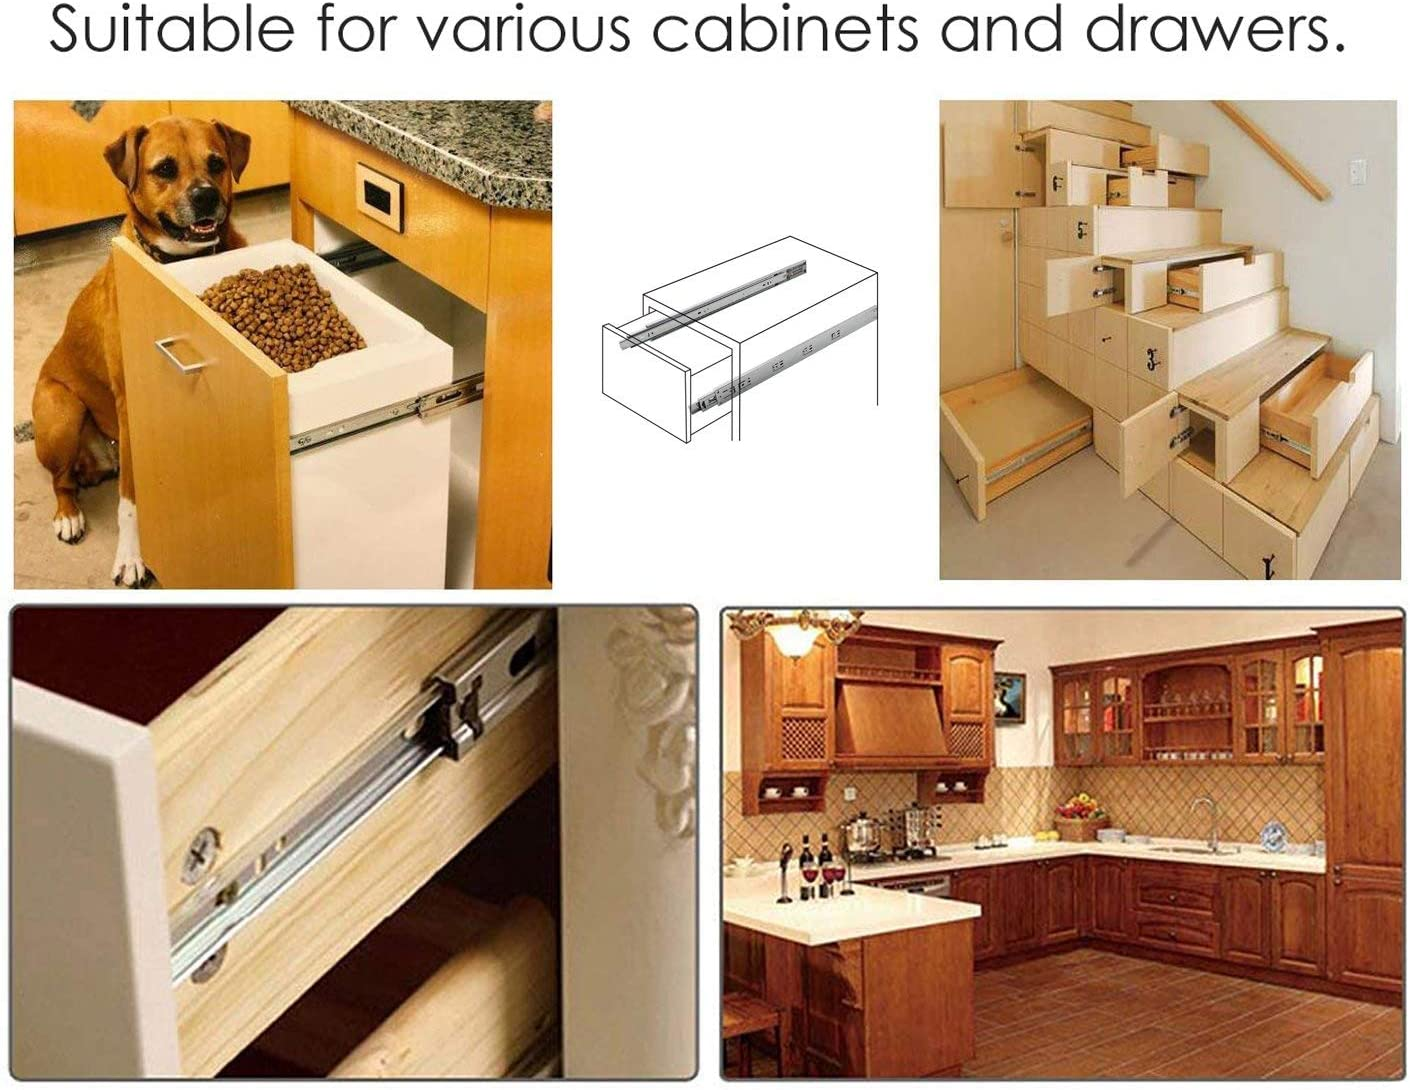 1 Pair 350mm Heavy Duty 3 Folds Ball Bearing Full Extension Drawer Runners Load Capacity 45kg Height 45mm 14inch